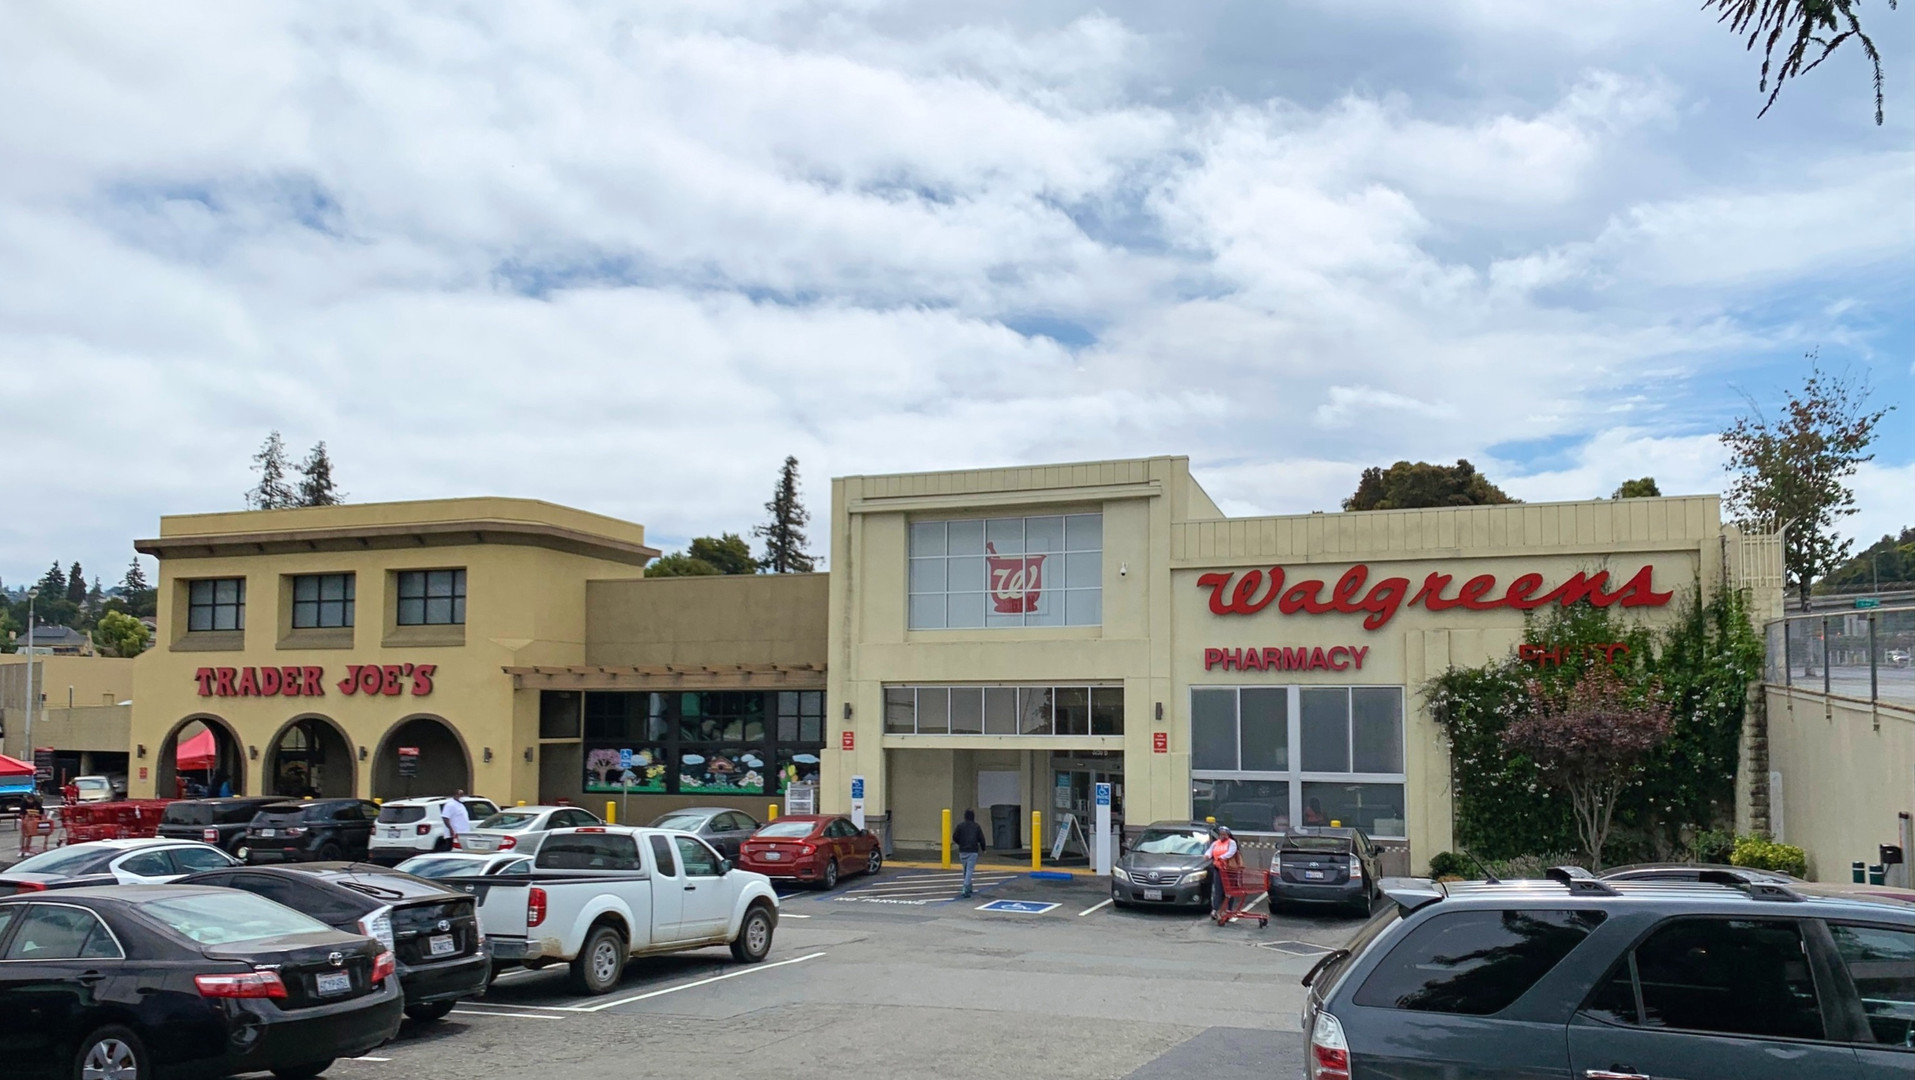 Trader Joe's & Walgreens | Lakeshore Ave, Oakland